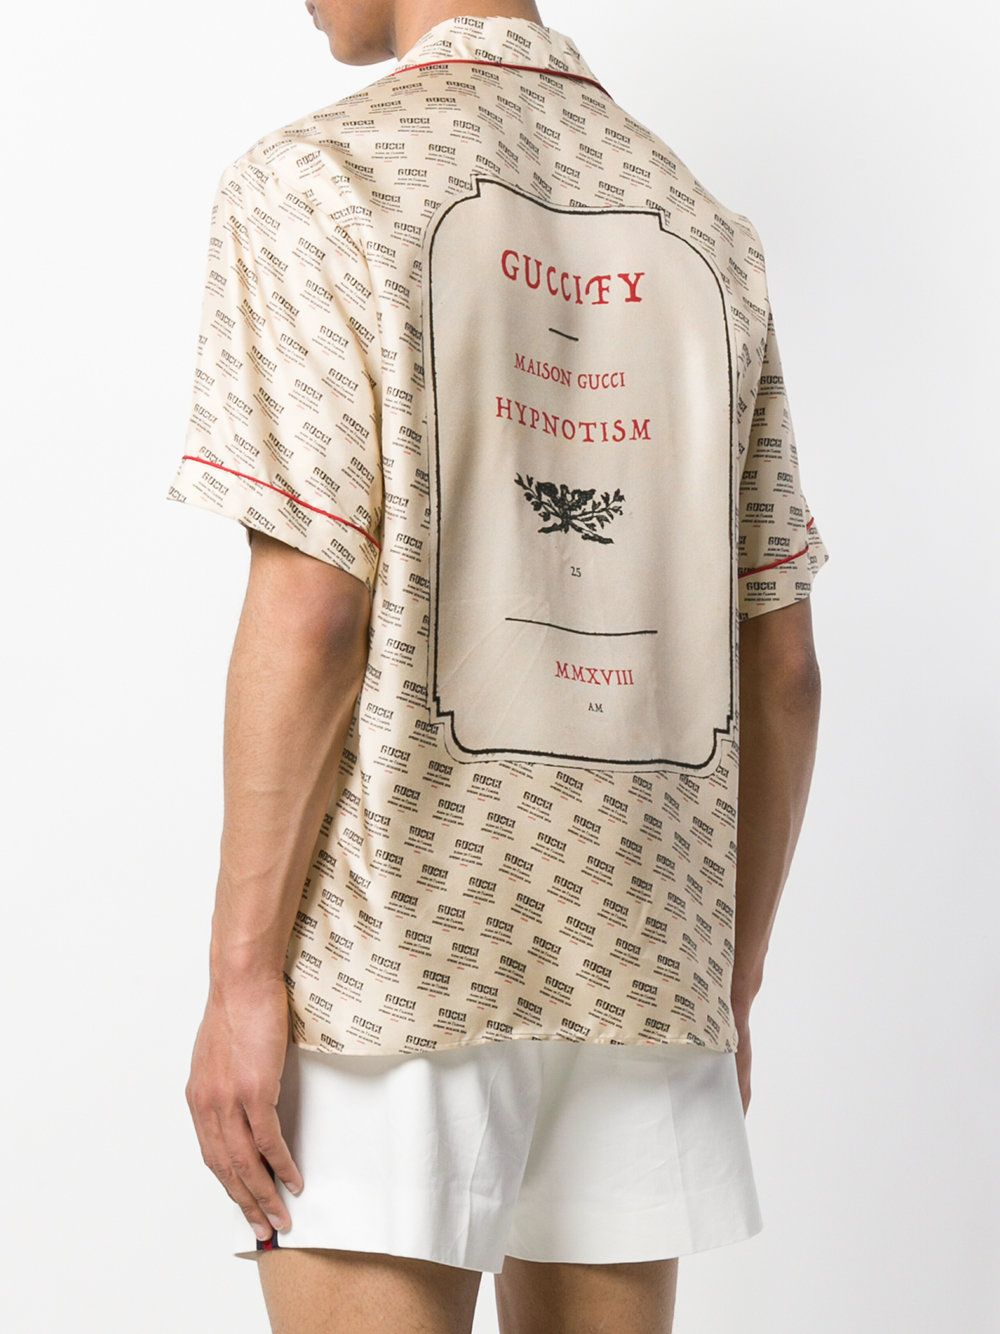 7489923bf9f Gucci invite stamp bowling shirt